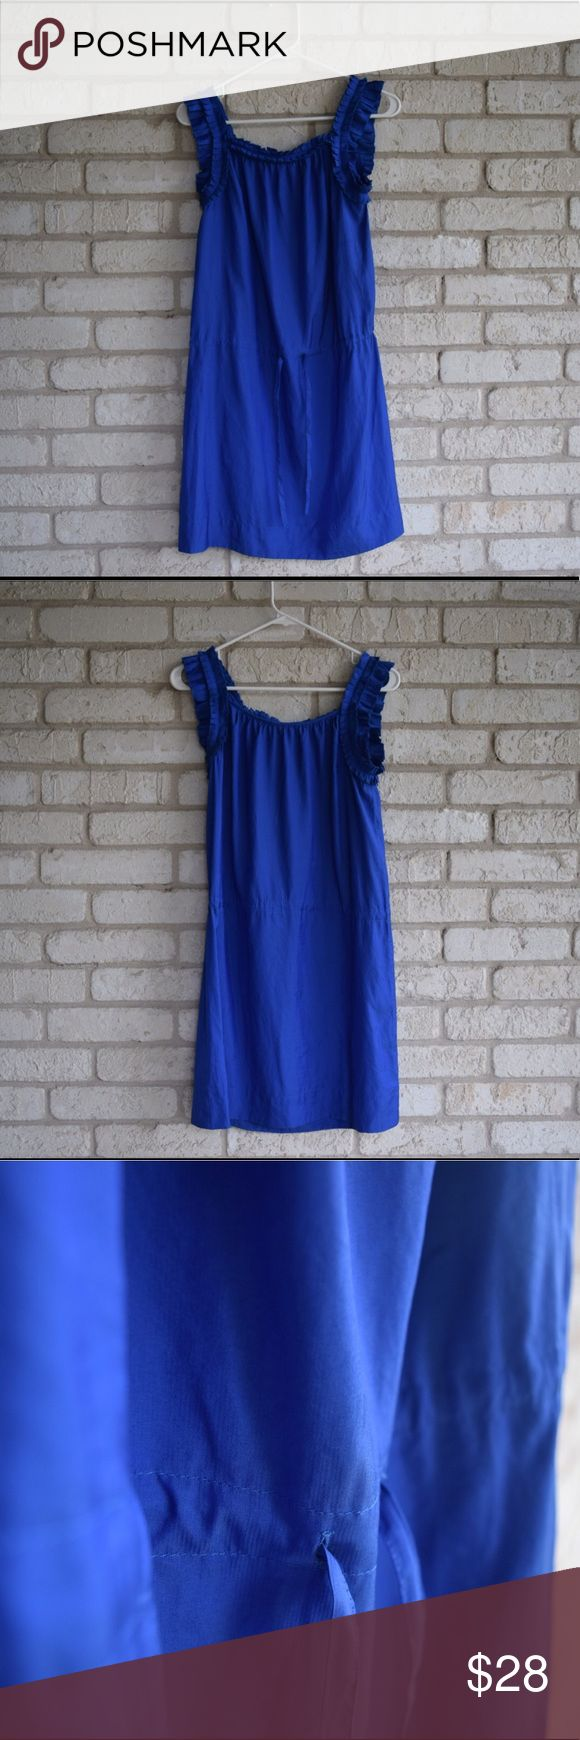 Anne Taylor Loft Drop Waist Royal Blue Dress Anne Taylor Loft sleeveless royal blue dress with drop waist and drawstring. Lightweight, folded details on sleeves, and perfect for business casual dress code or a more formal event. Ann Taylor Loft Dresses